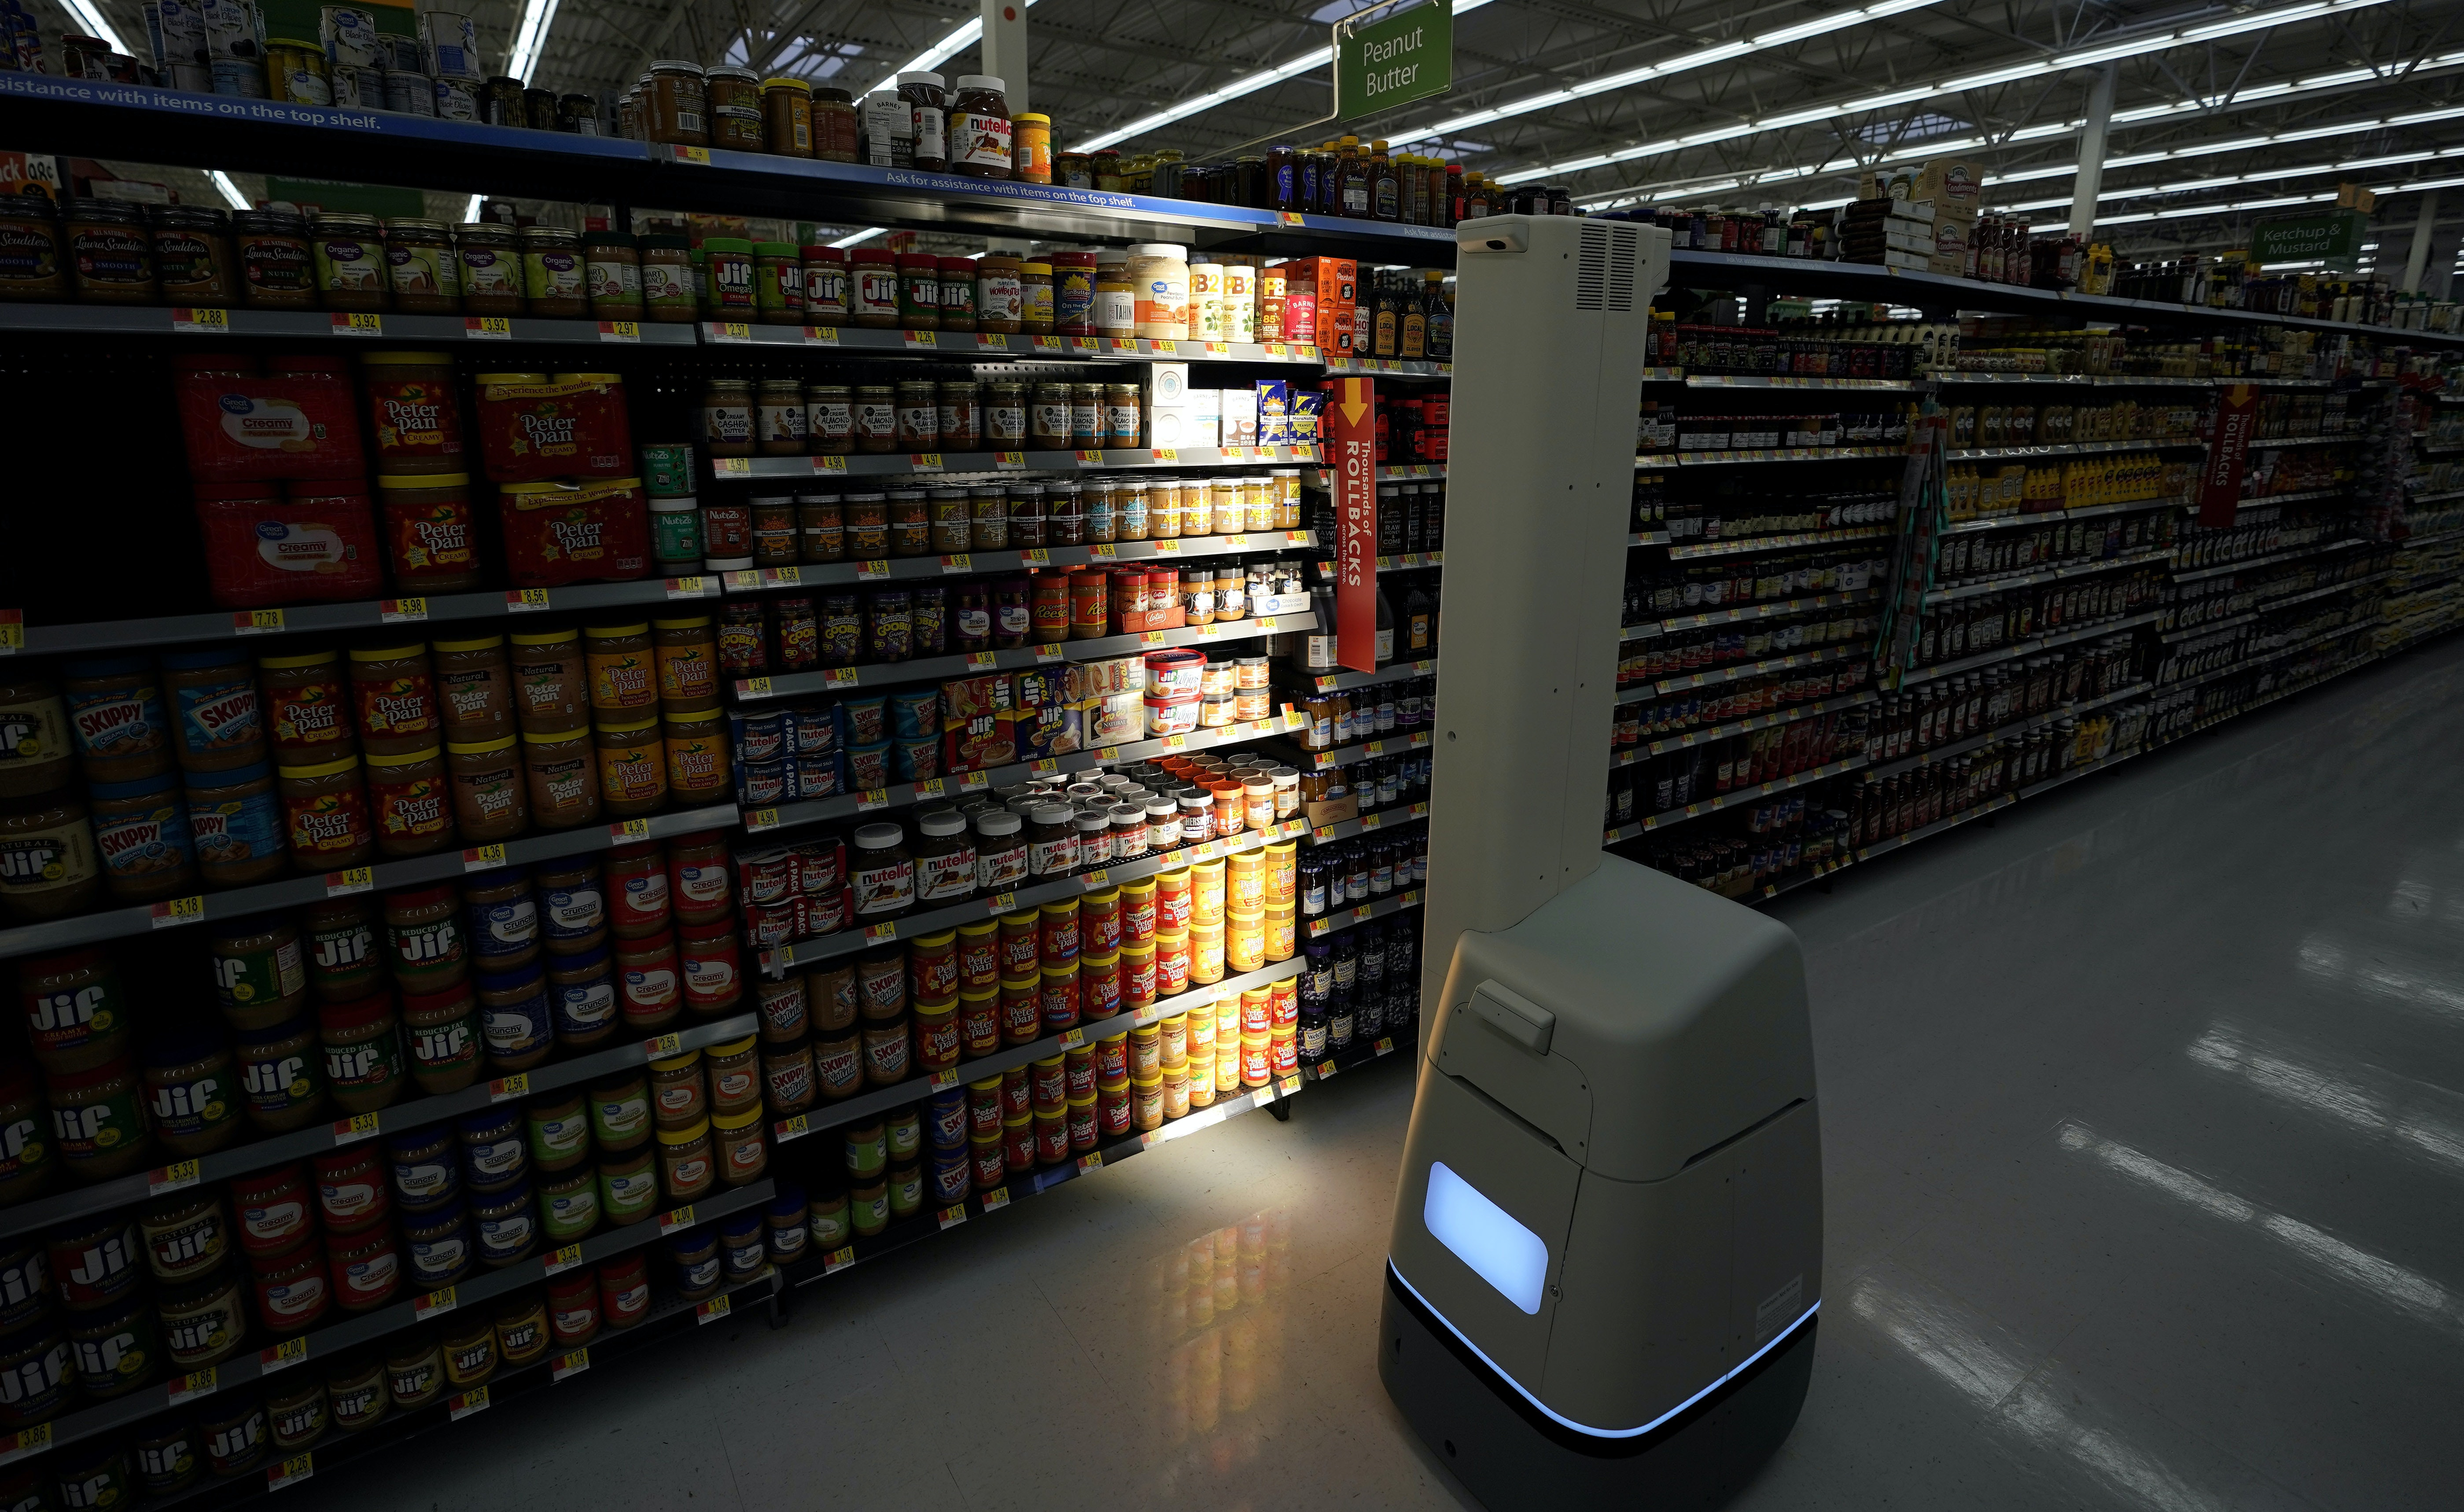 Retailers like Walmart are embracing robots – here's how workers can tell if they'll be replaced